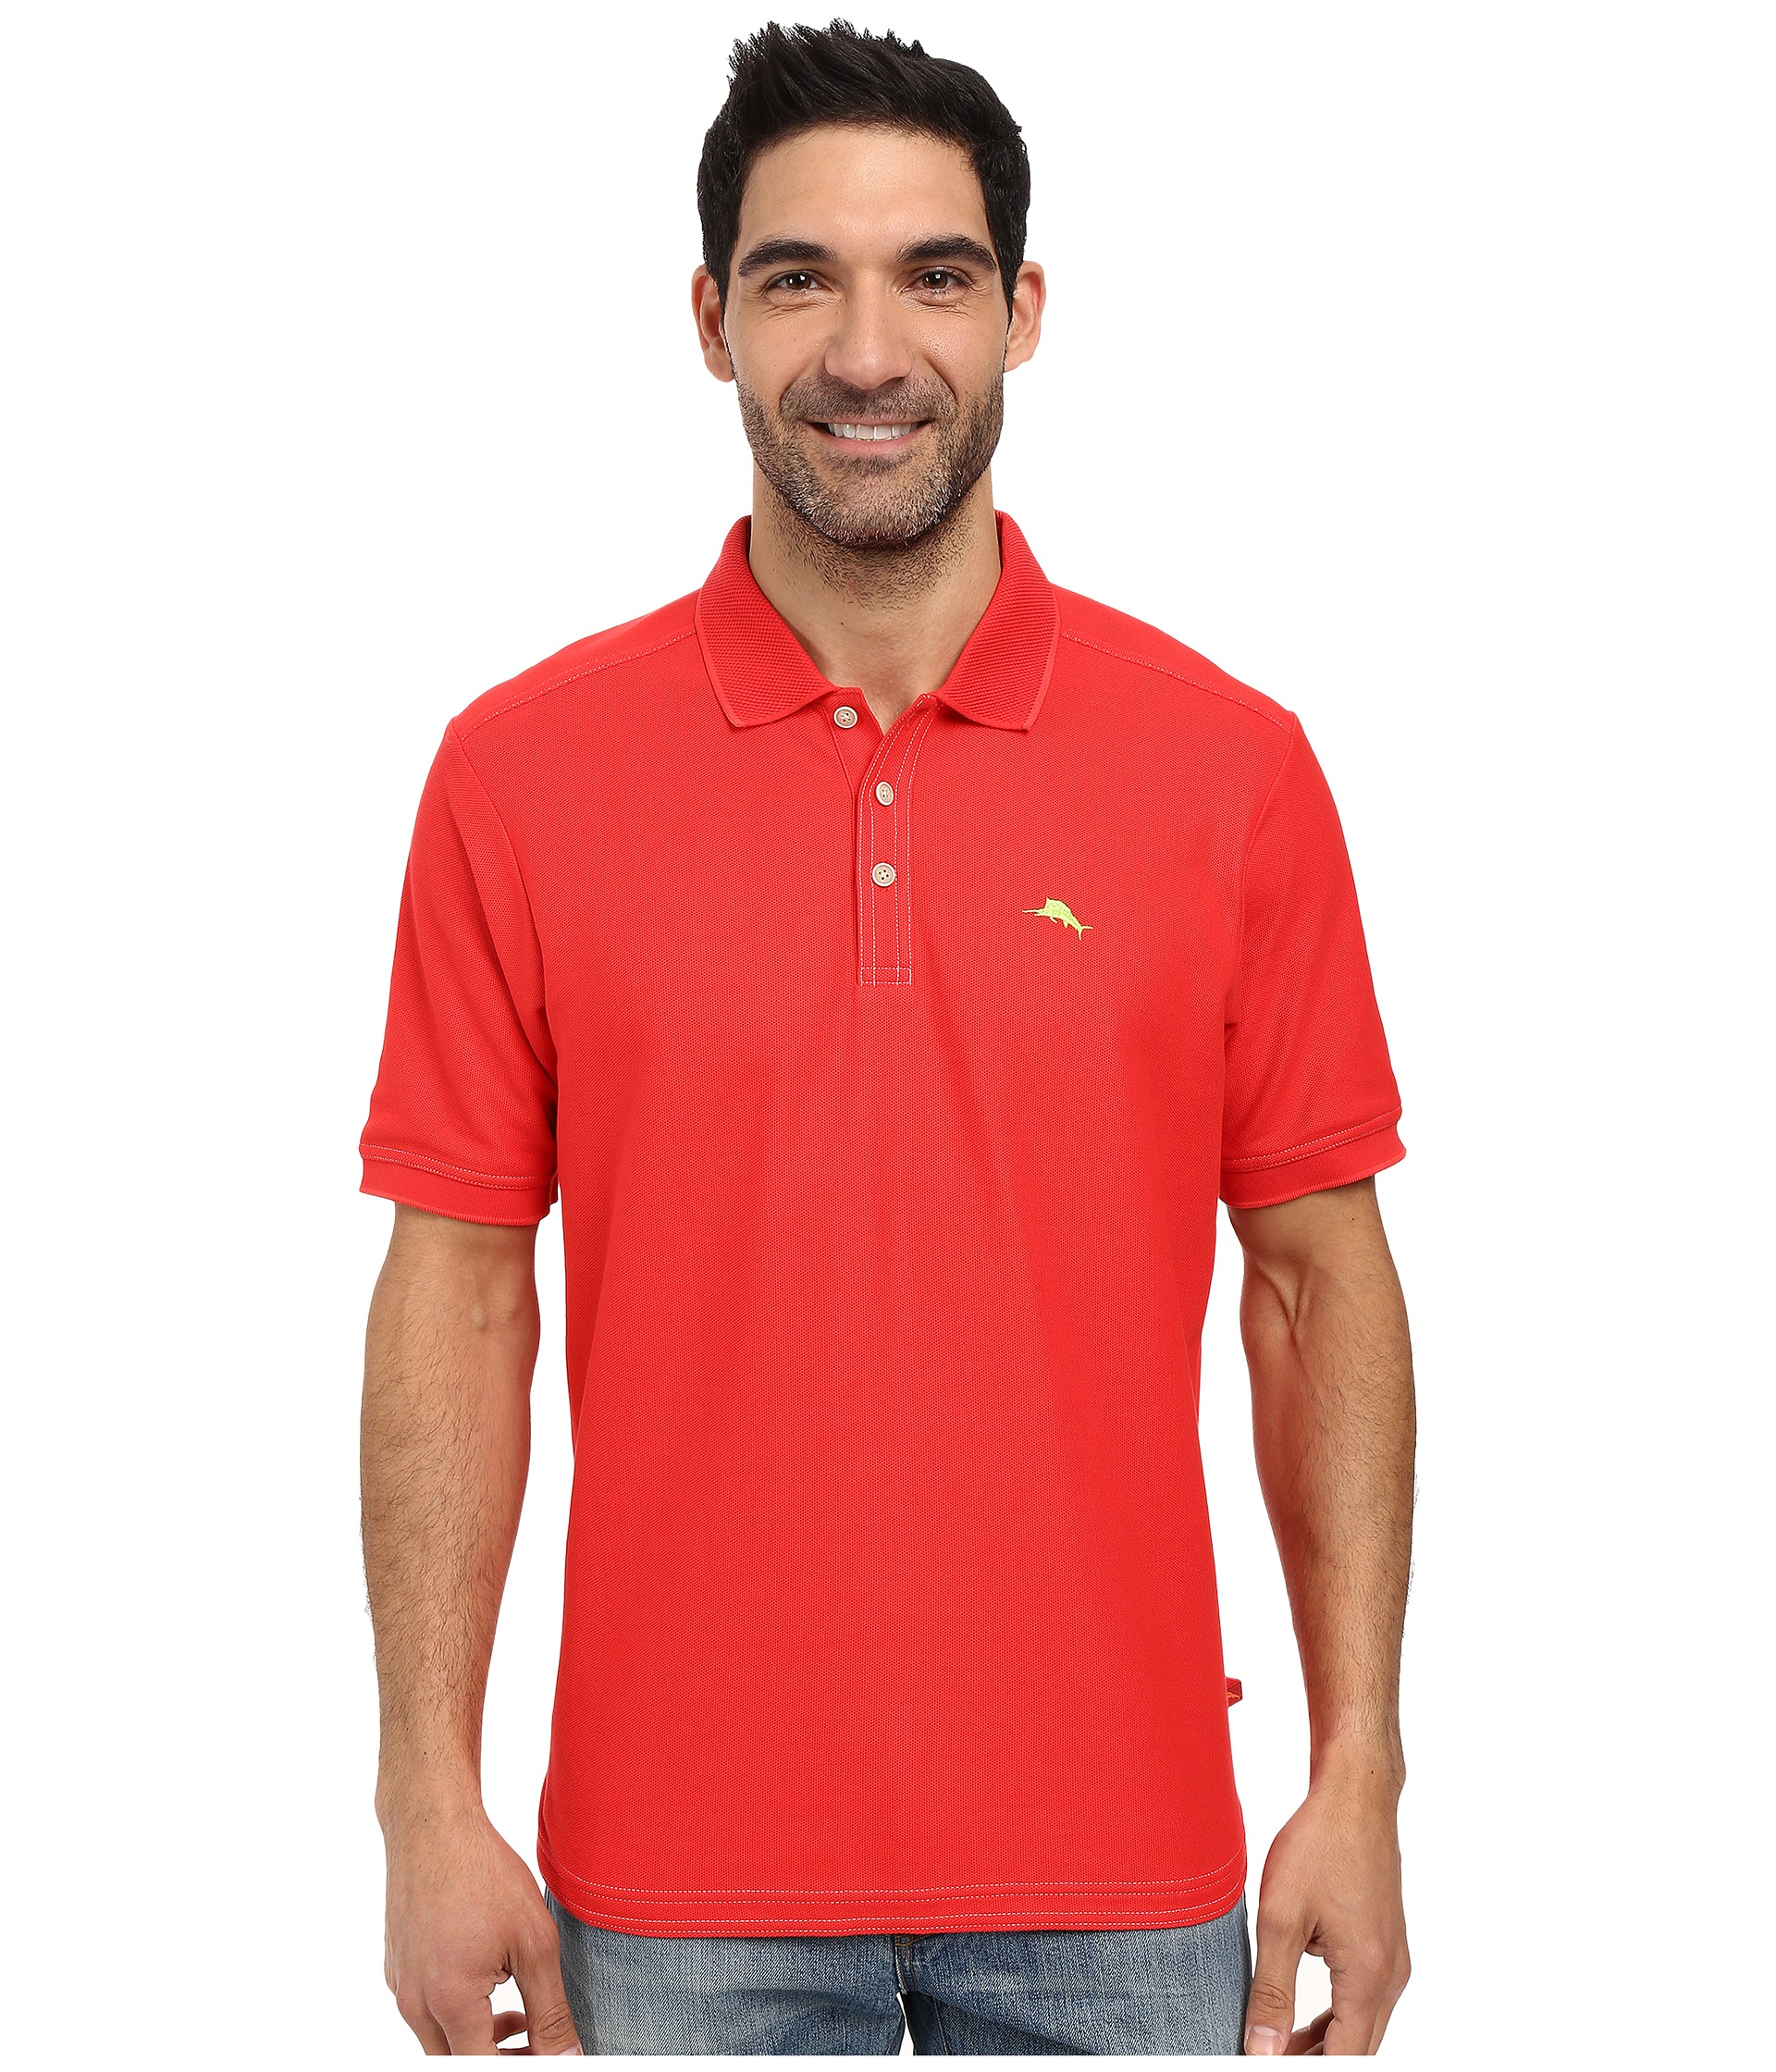 Tommy bahama the emfielder polo shirt free for Tommy bahama polo shirts on sale